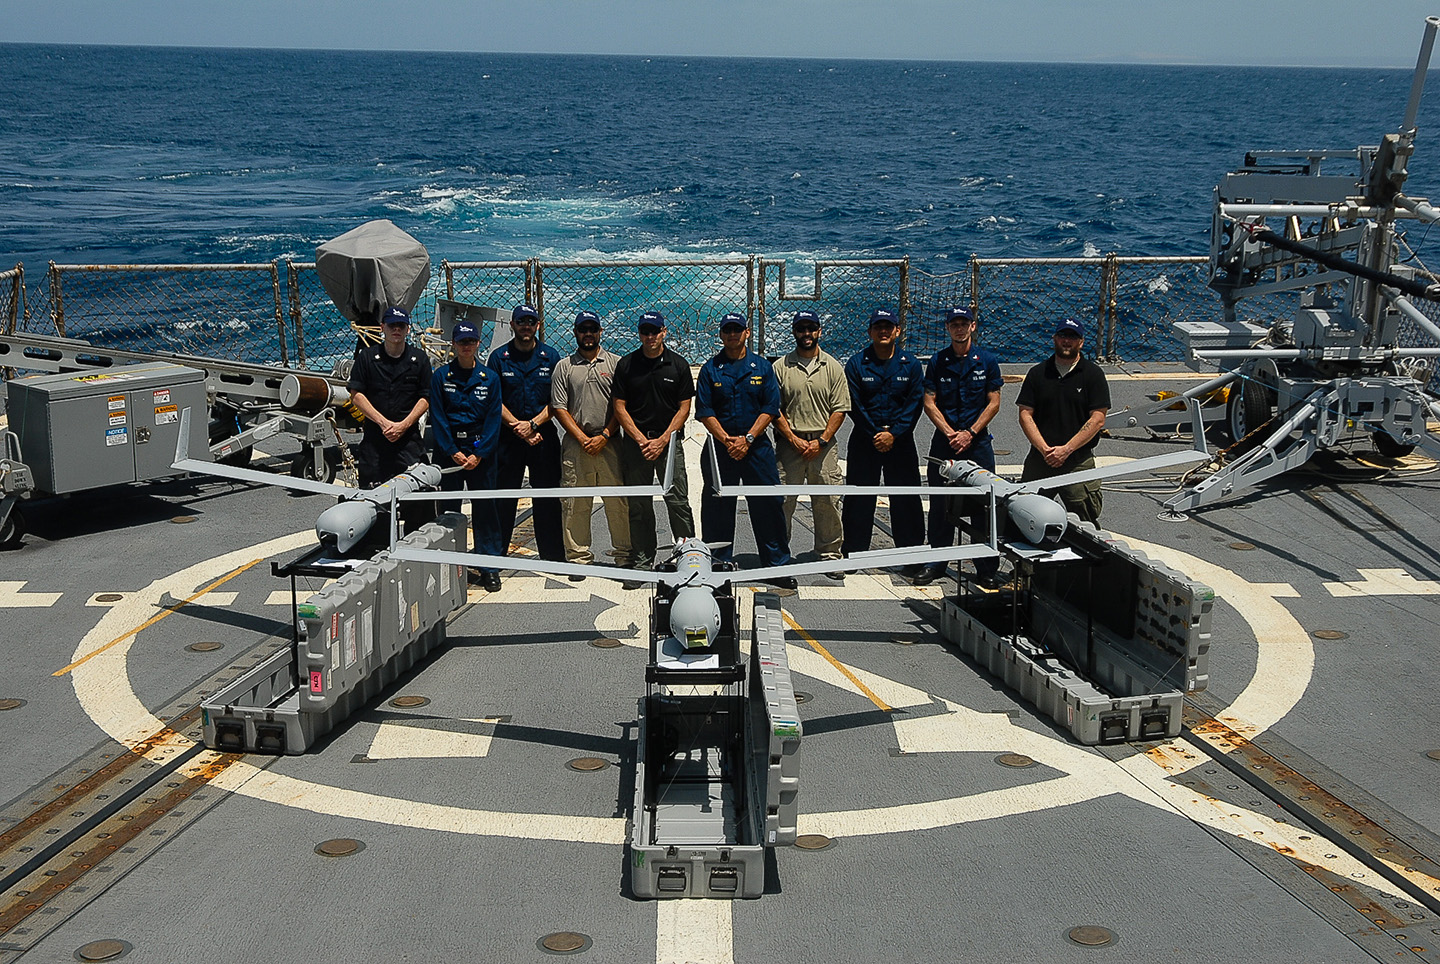 ScanEagle on a ship with crew